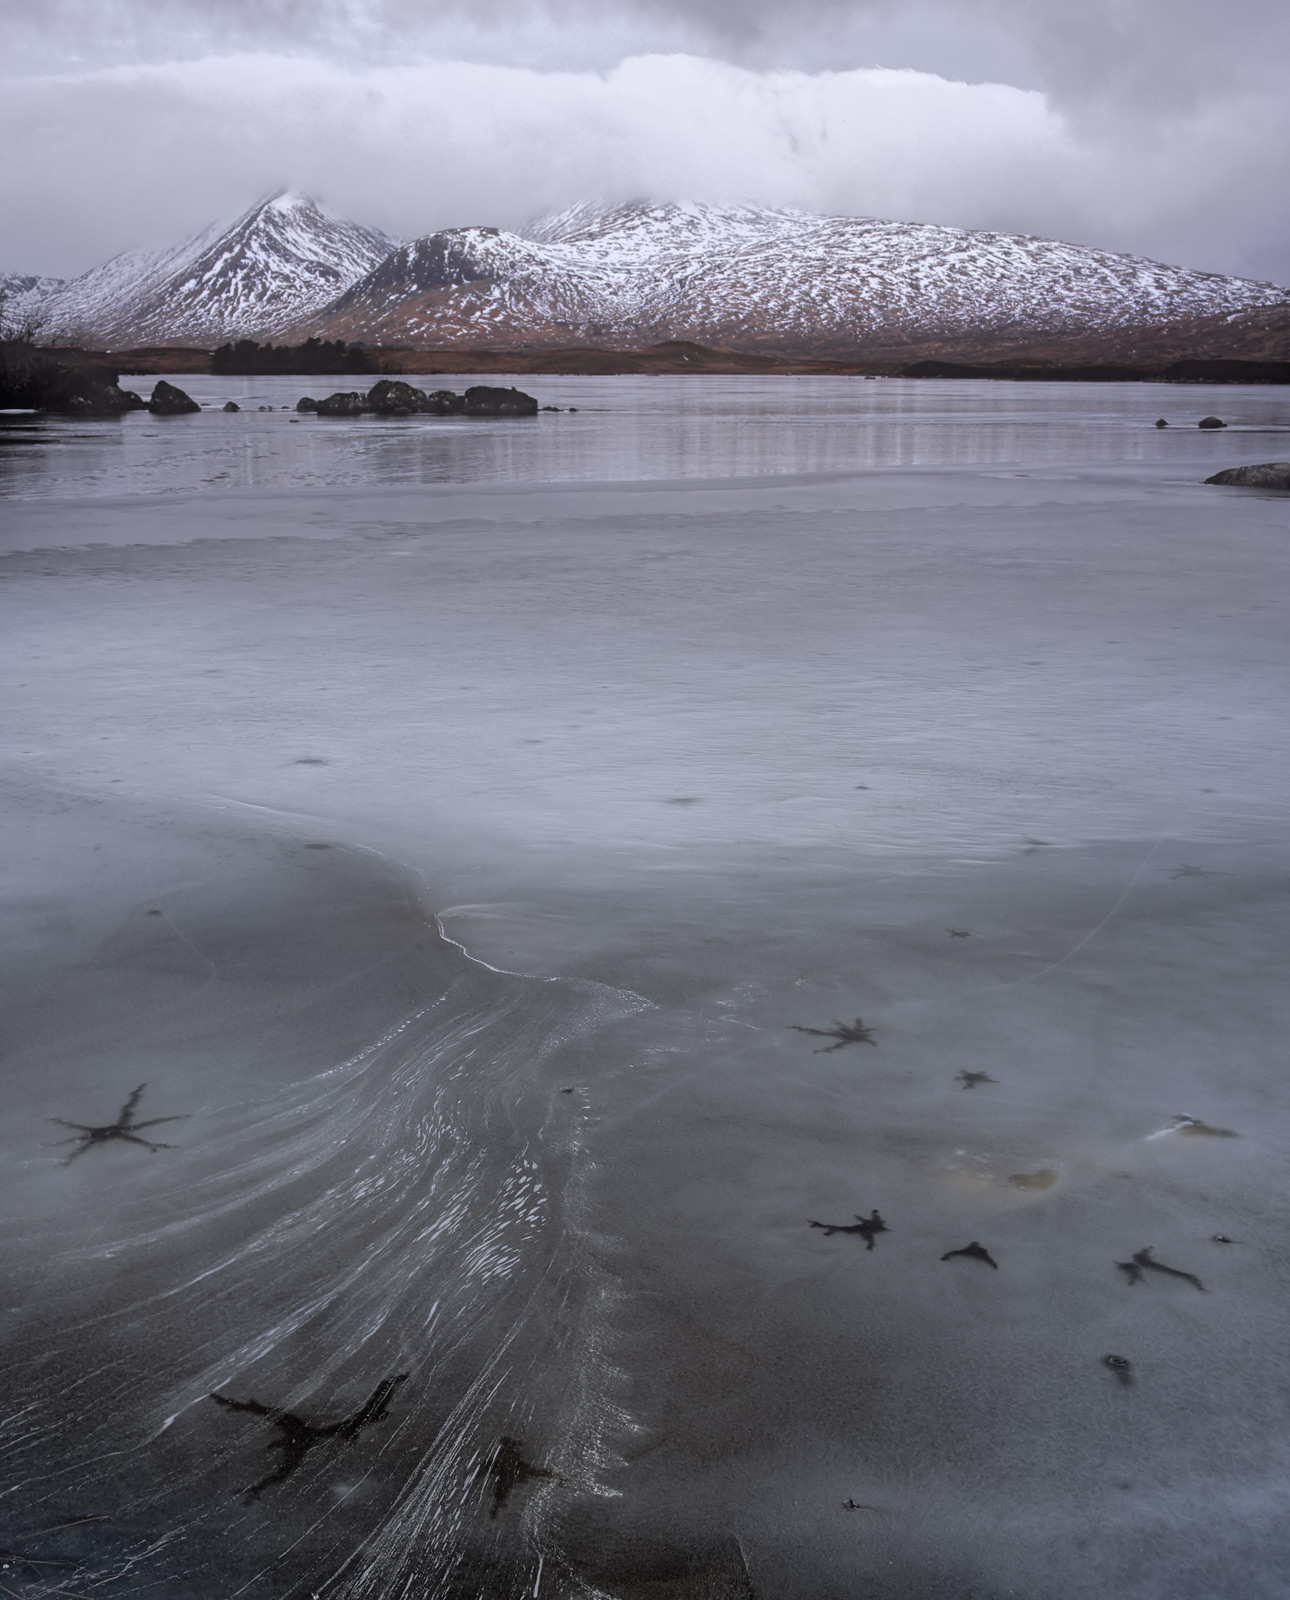 Rannoch moor is about as bleak a place as anywhere in Britain during the depths of winter. Never-the-less I am always drawn...